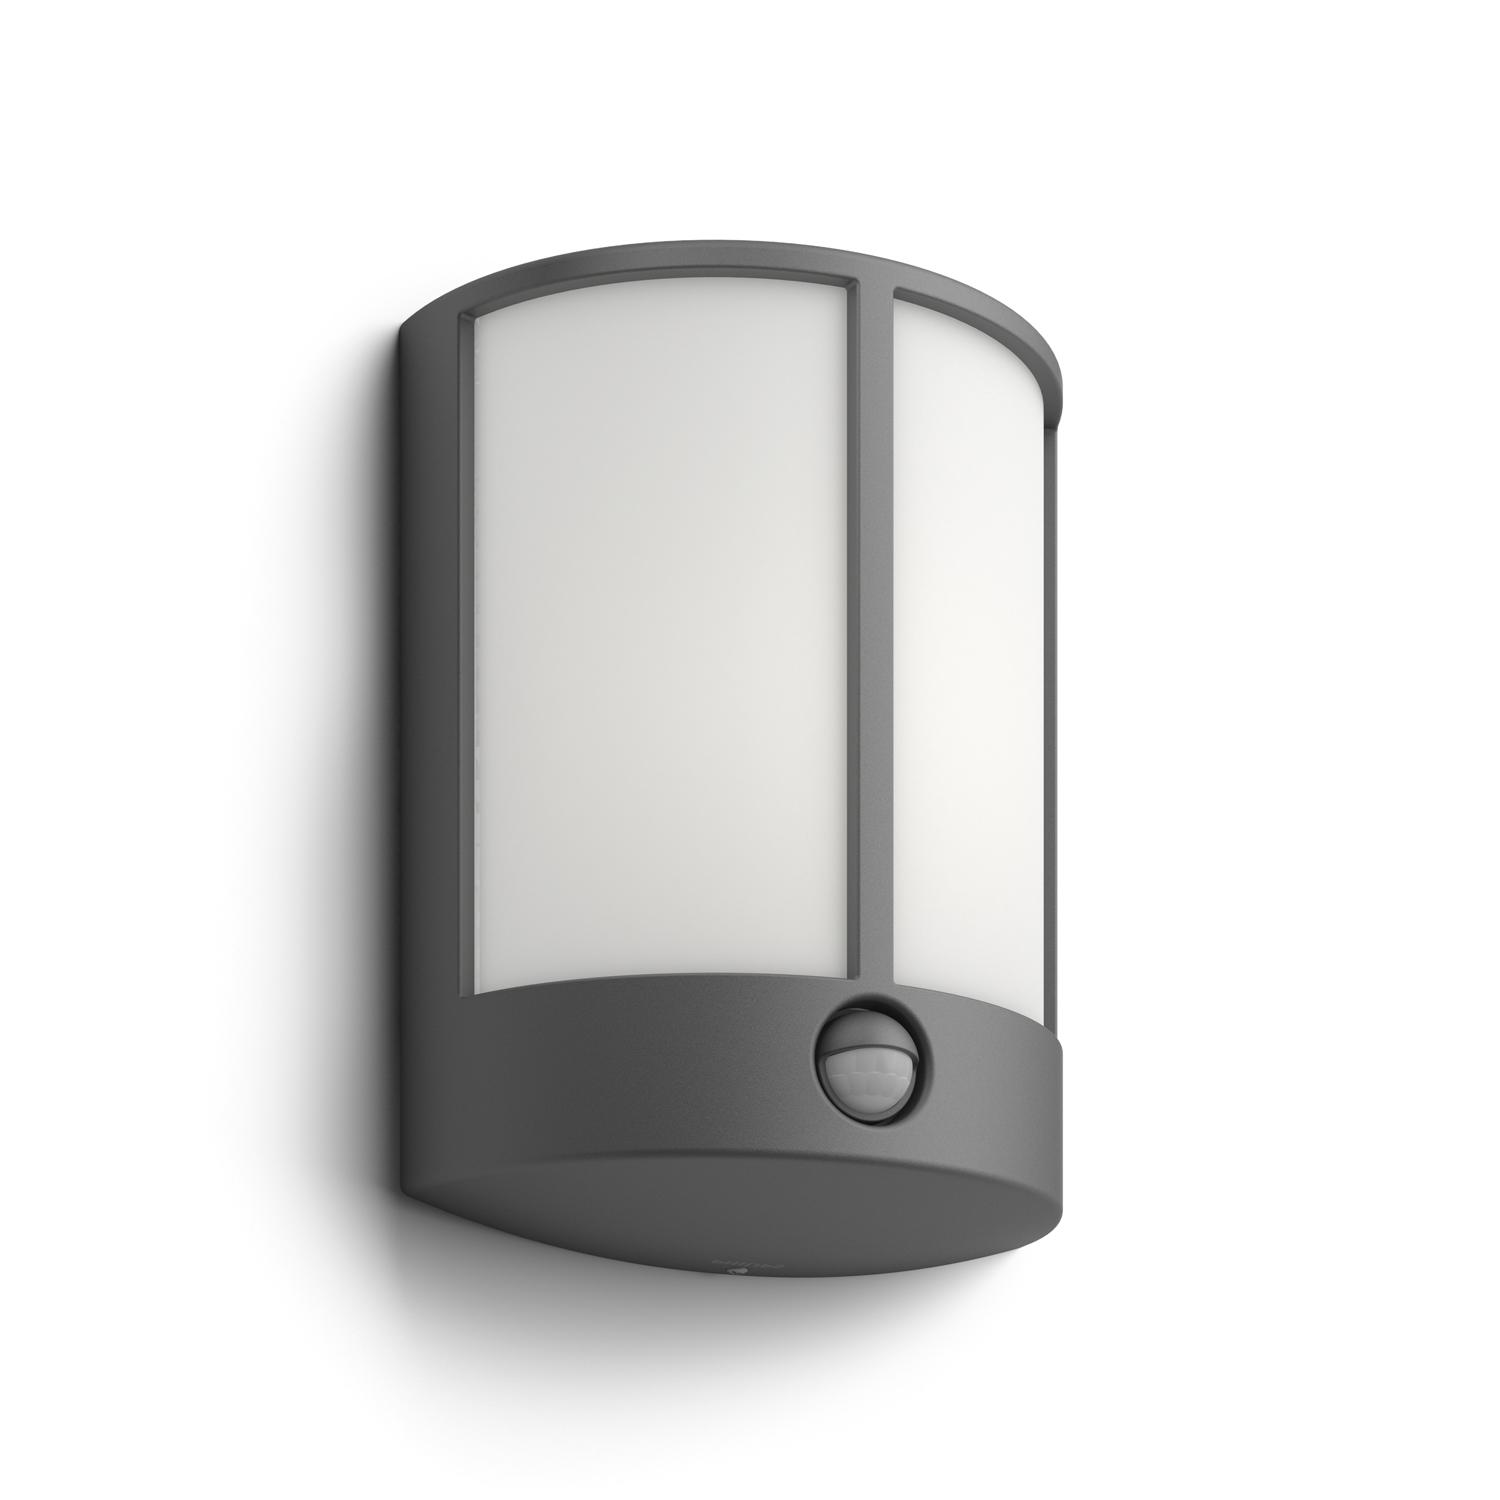 Outdoor Security Lights Wickes: Philips MyGarden Stock LED Outdoor Wall Light With Motion